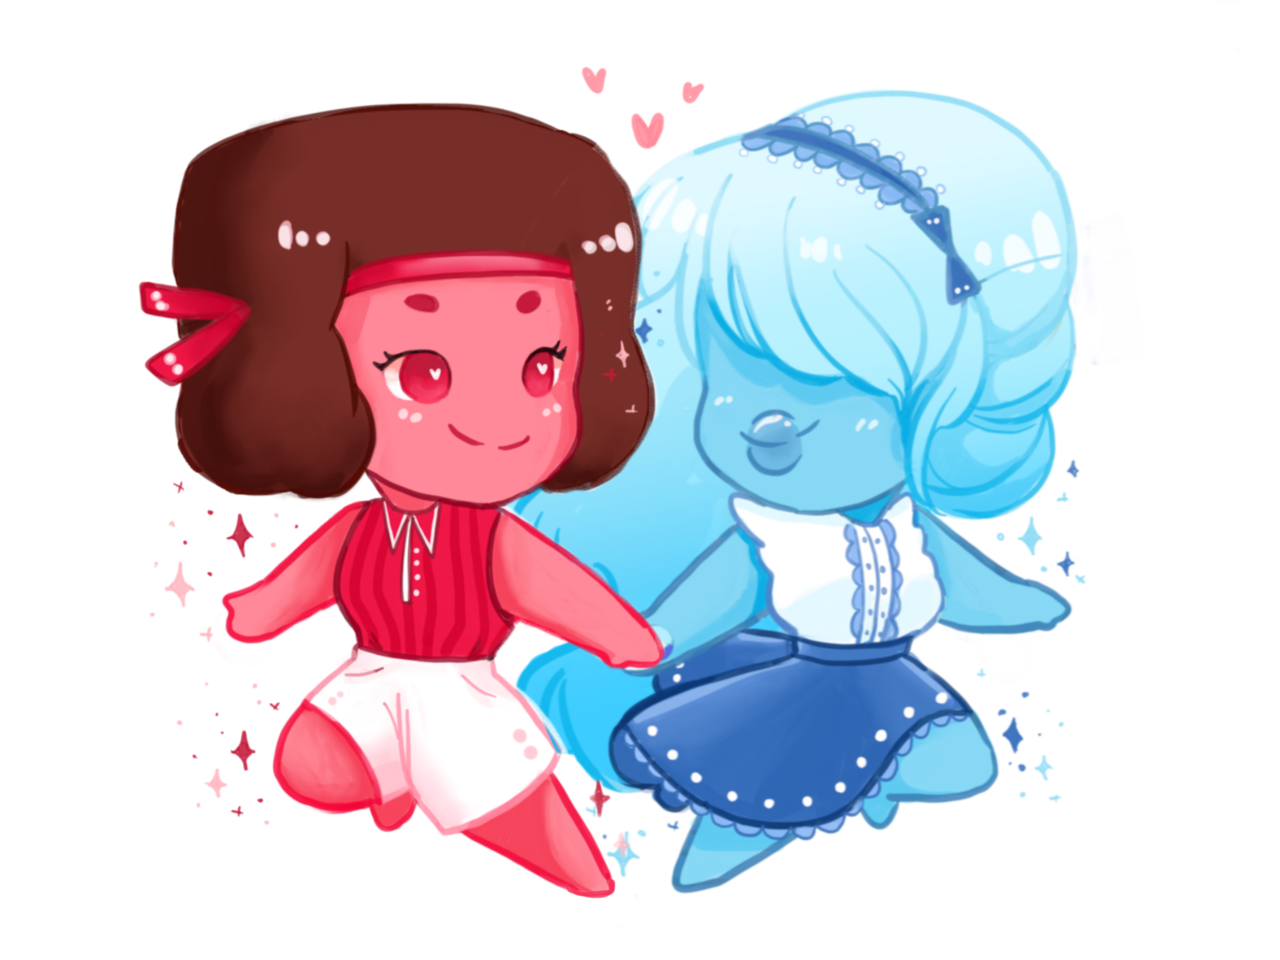 Girlfriend cuties pt 3 : Ruby + Sapphy